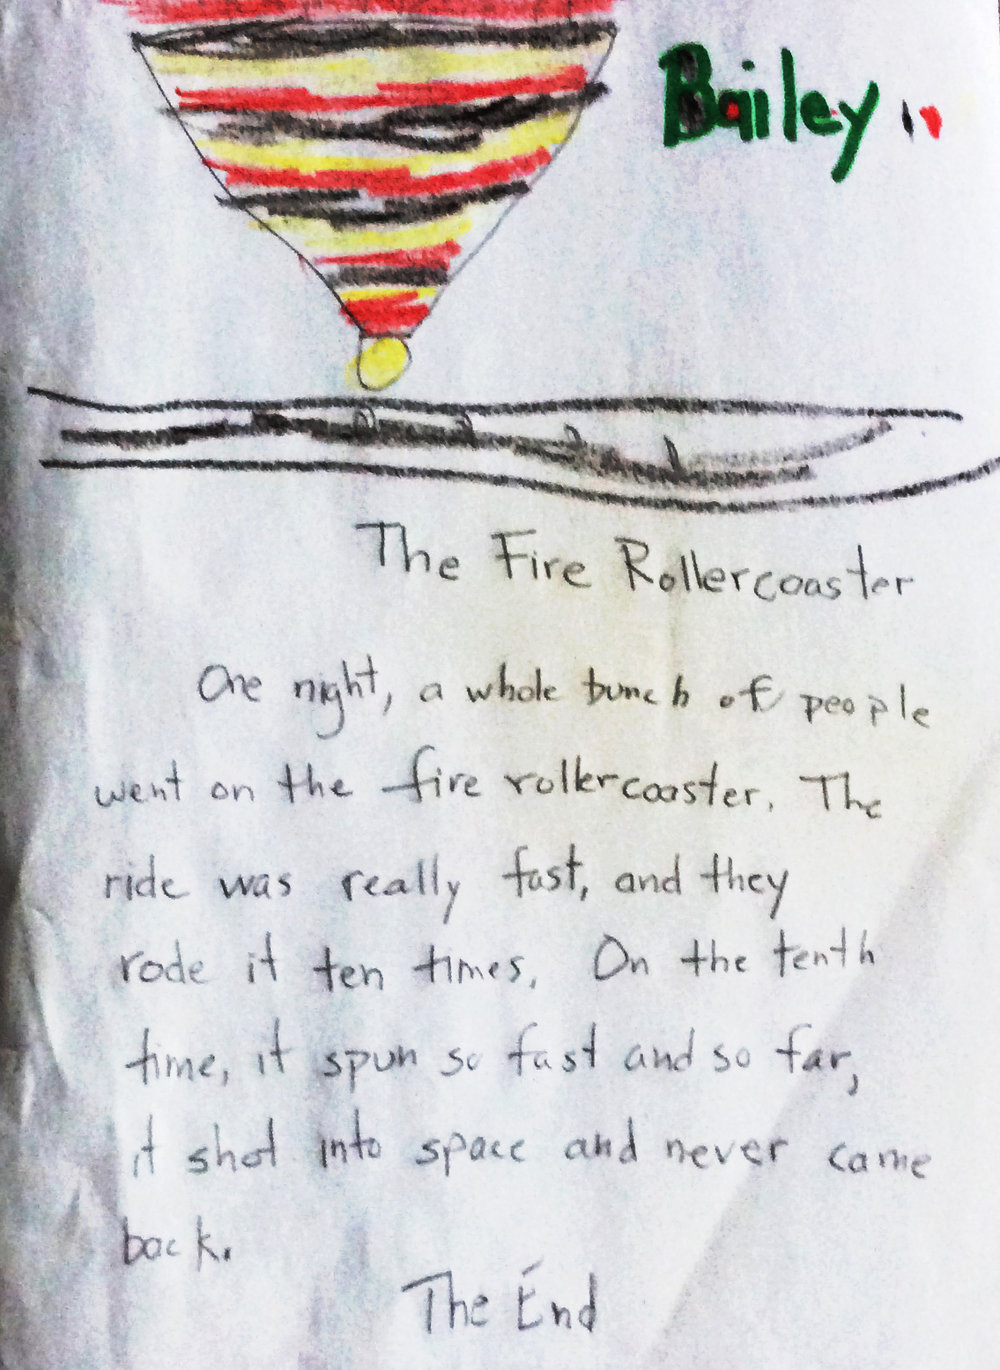 """The Fire Roller Coaster"" by Bailey"